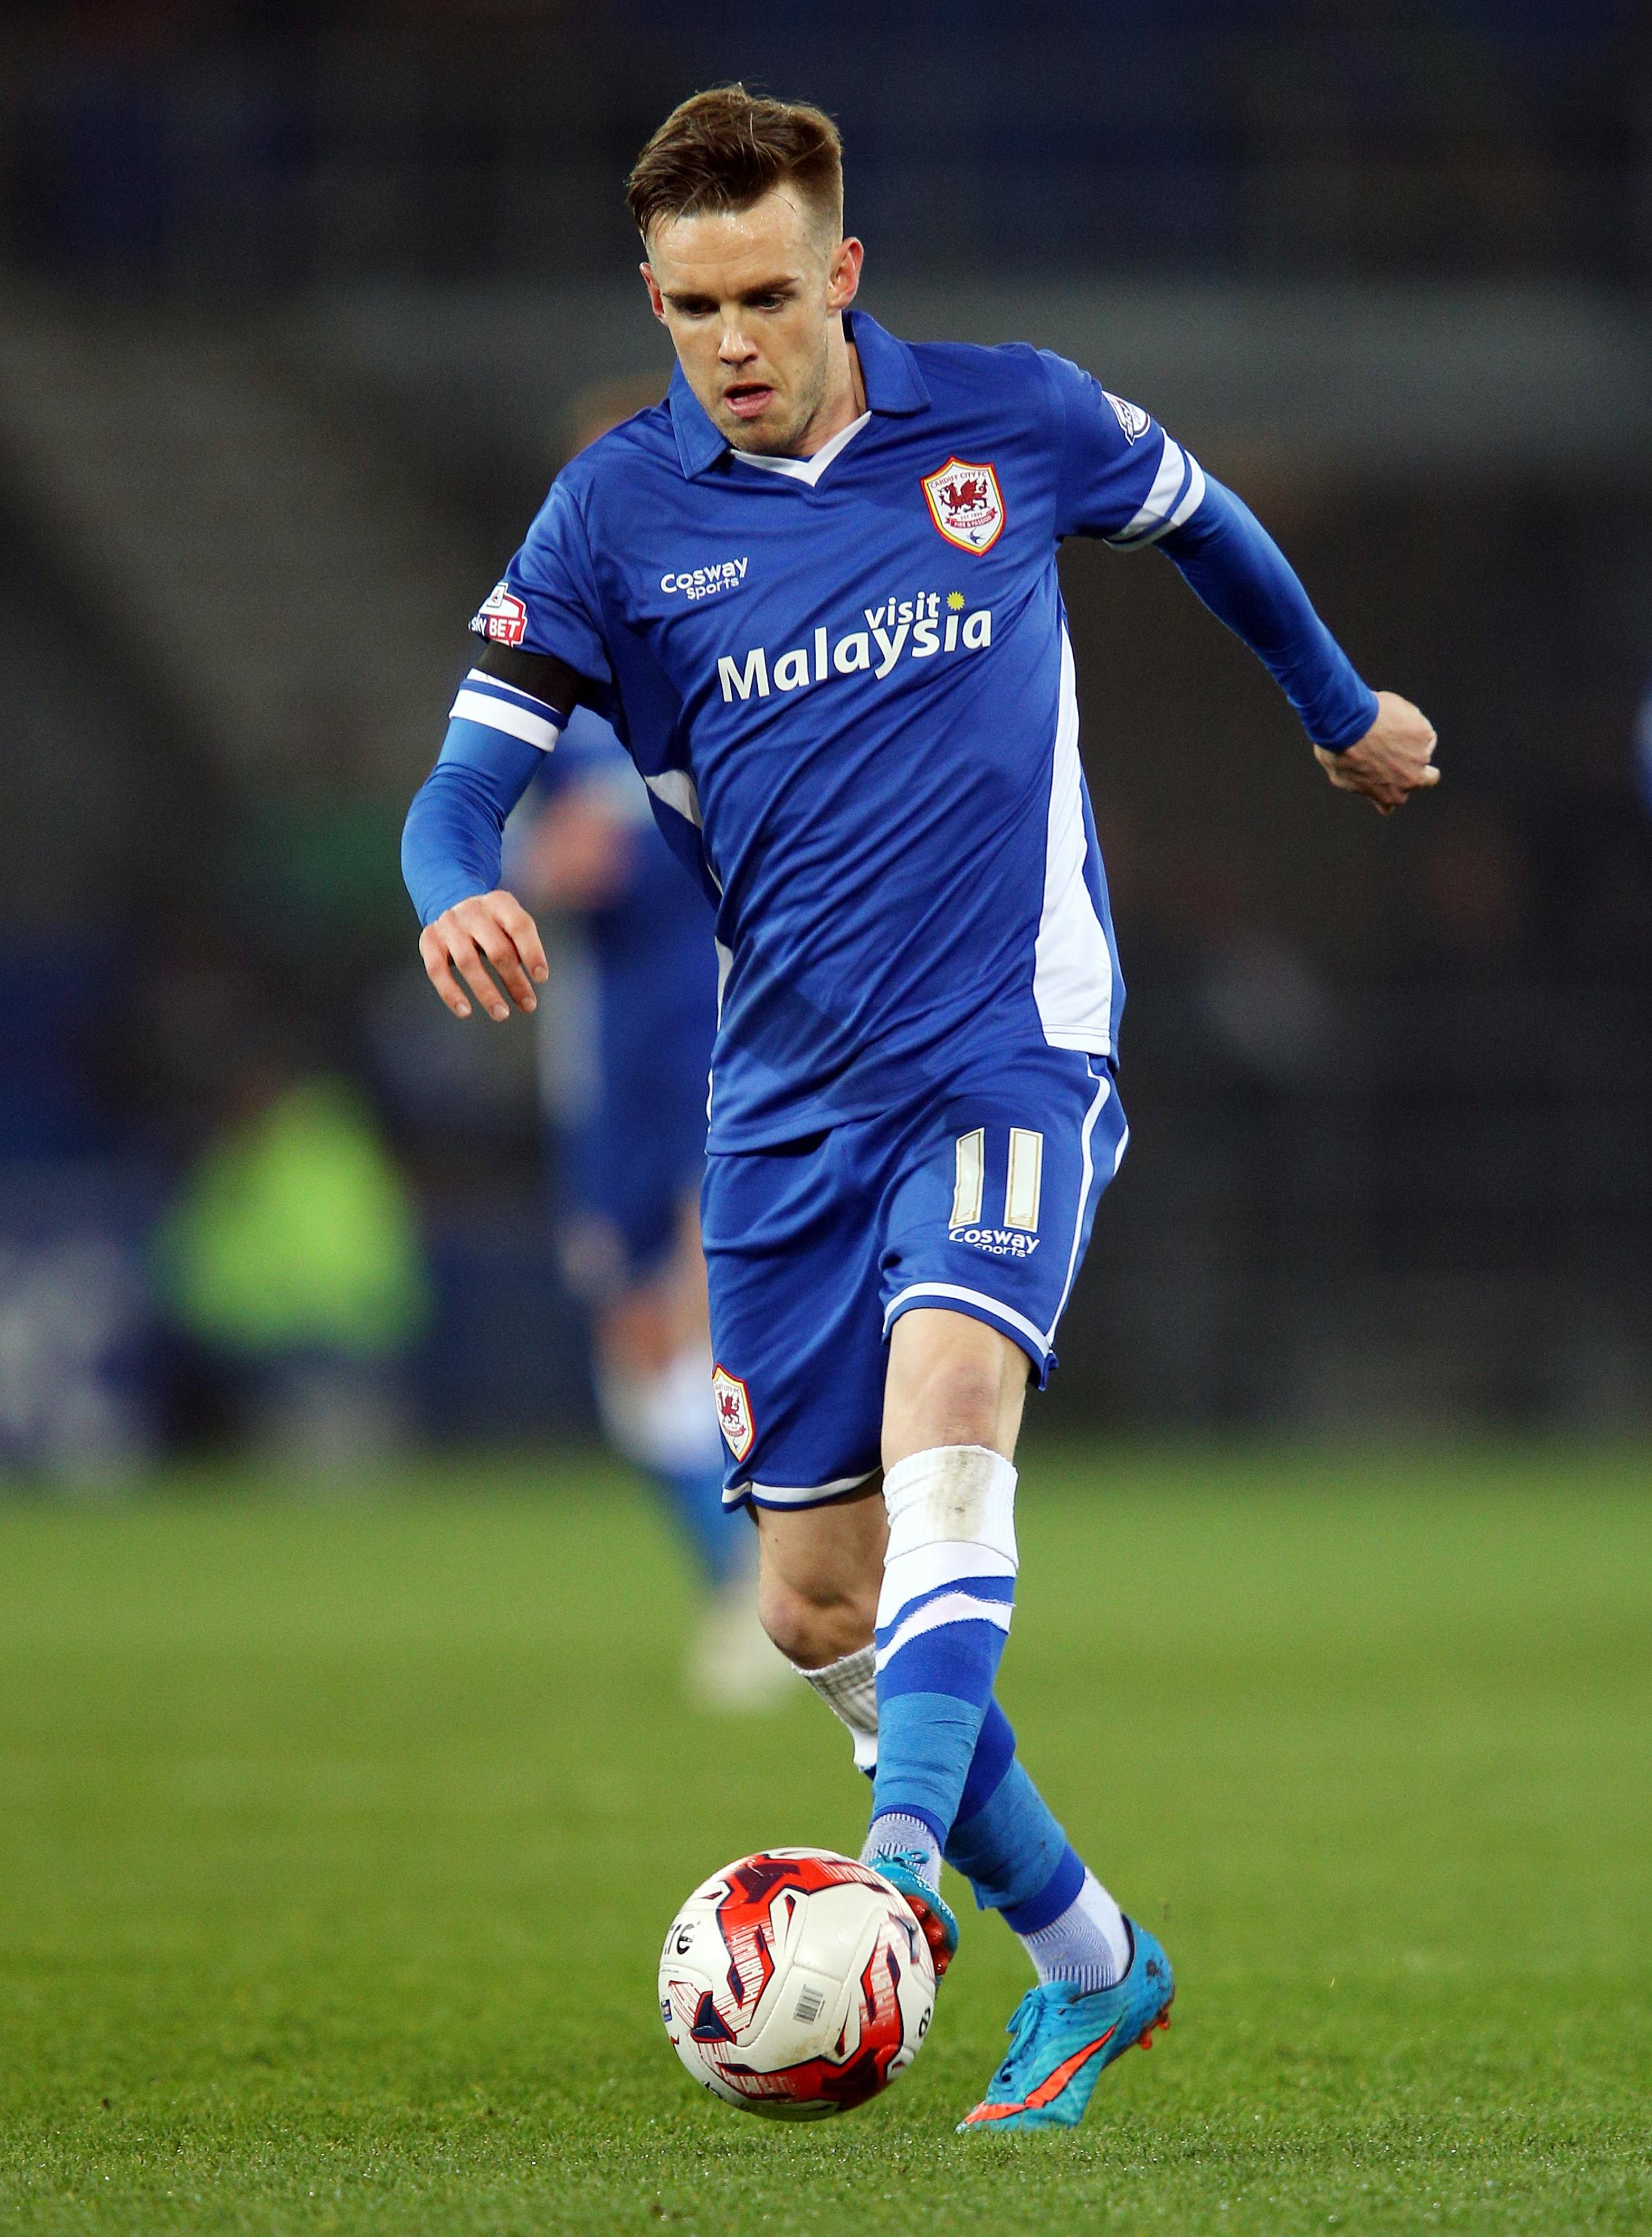 Craig Noone in action for Cardiff City last season